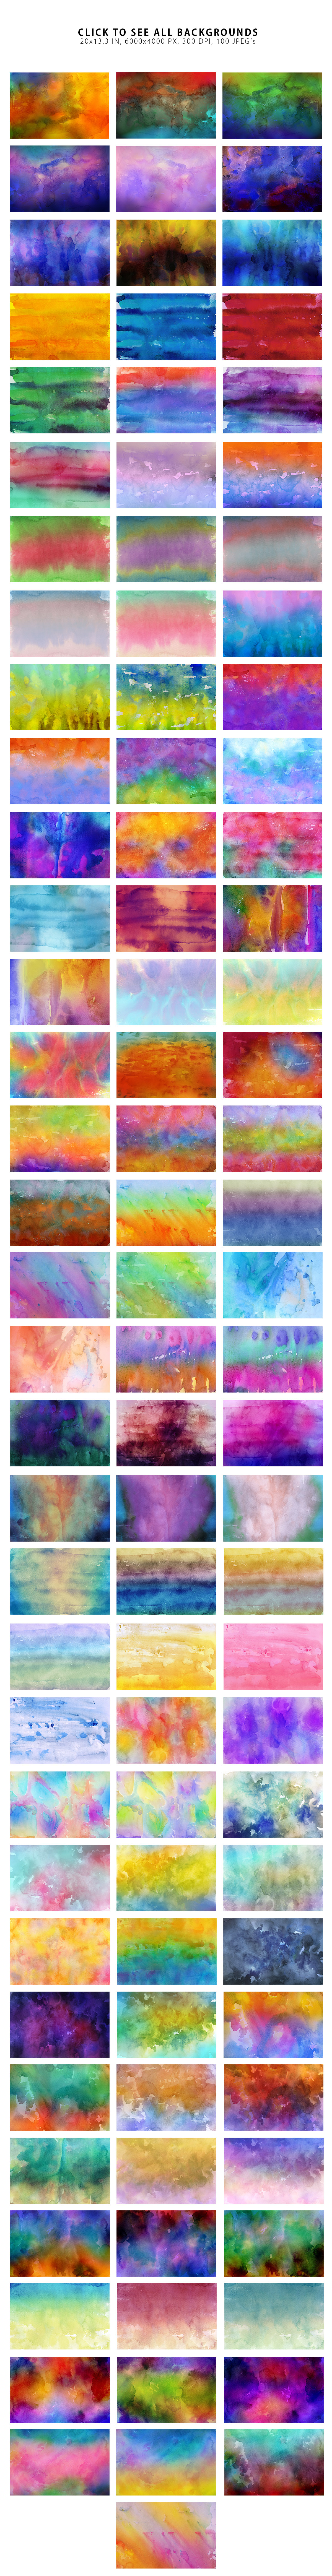 Only Watercolor Backgrounds Bundle example image 23